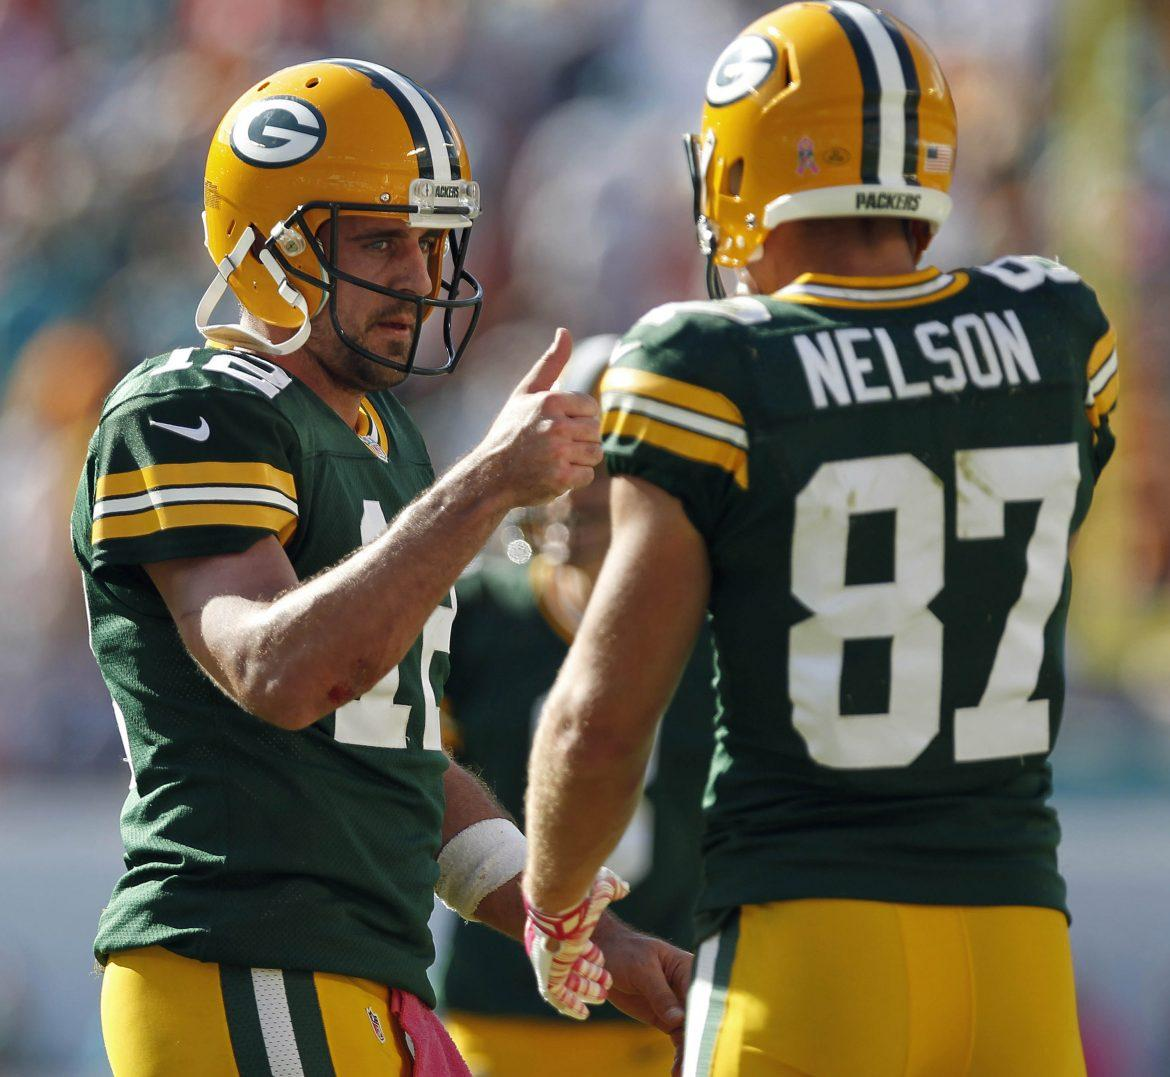 Green Bay Packers quarterback Aaron Rodgers (left) and wide receiver Jordy Nelson (right) are among this week's Thanksgiving Fantasy Football Picks. Photo courtesy of Tribune News Services.